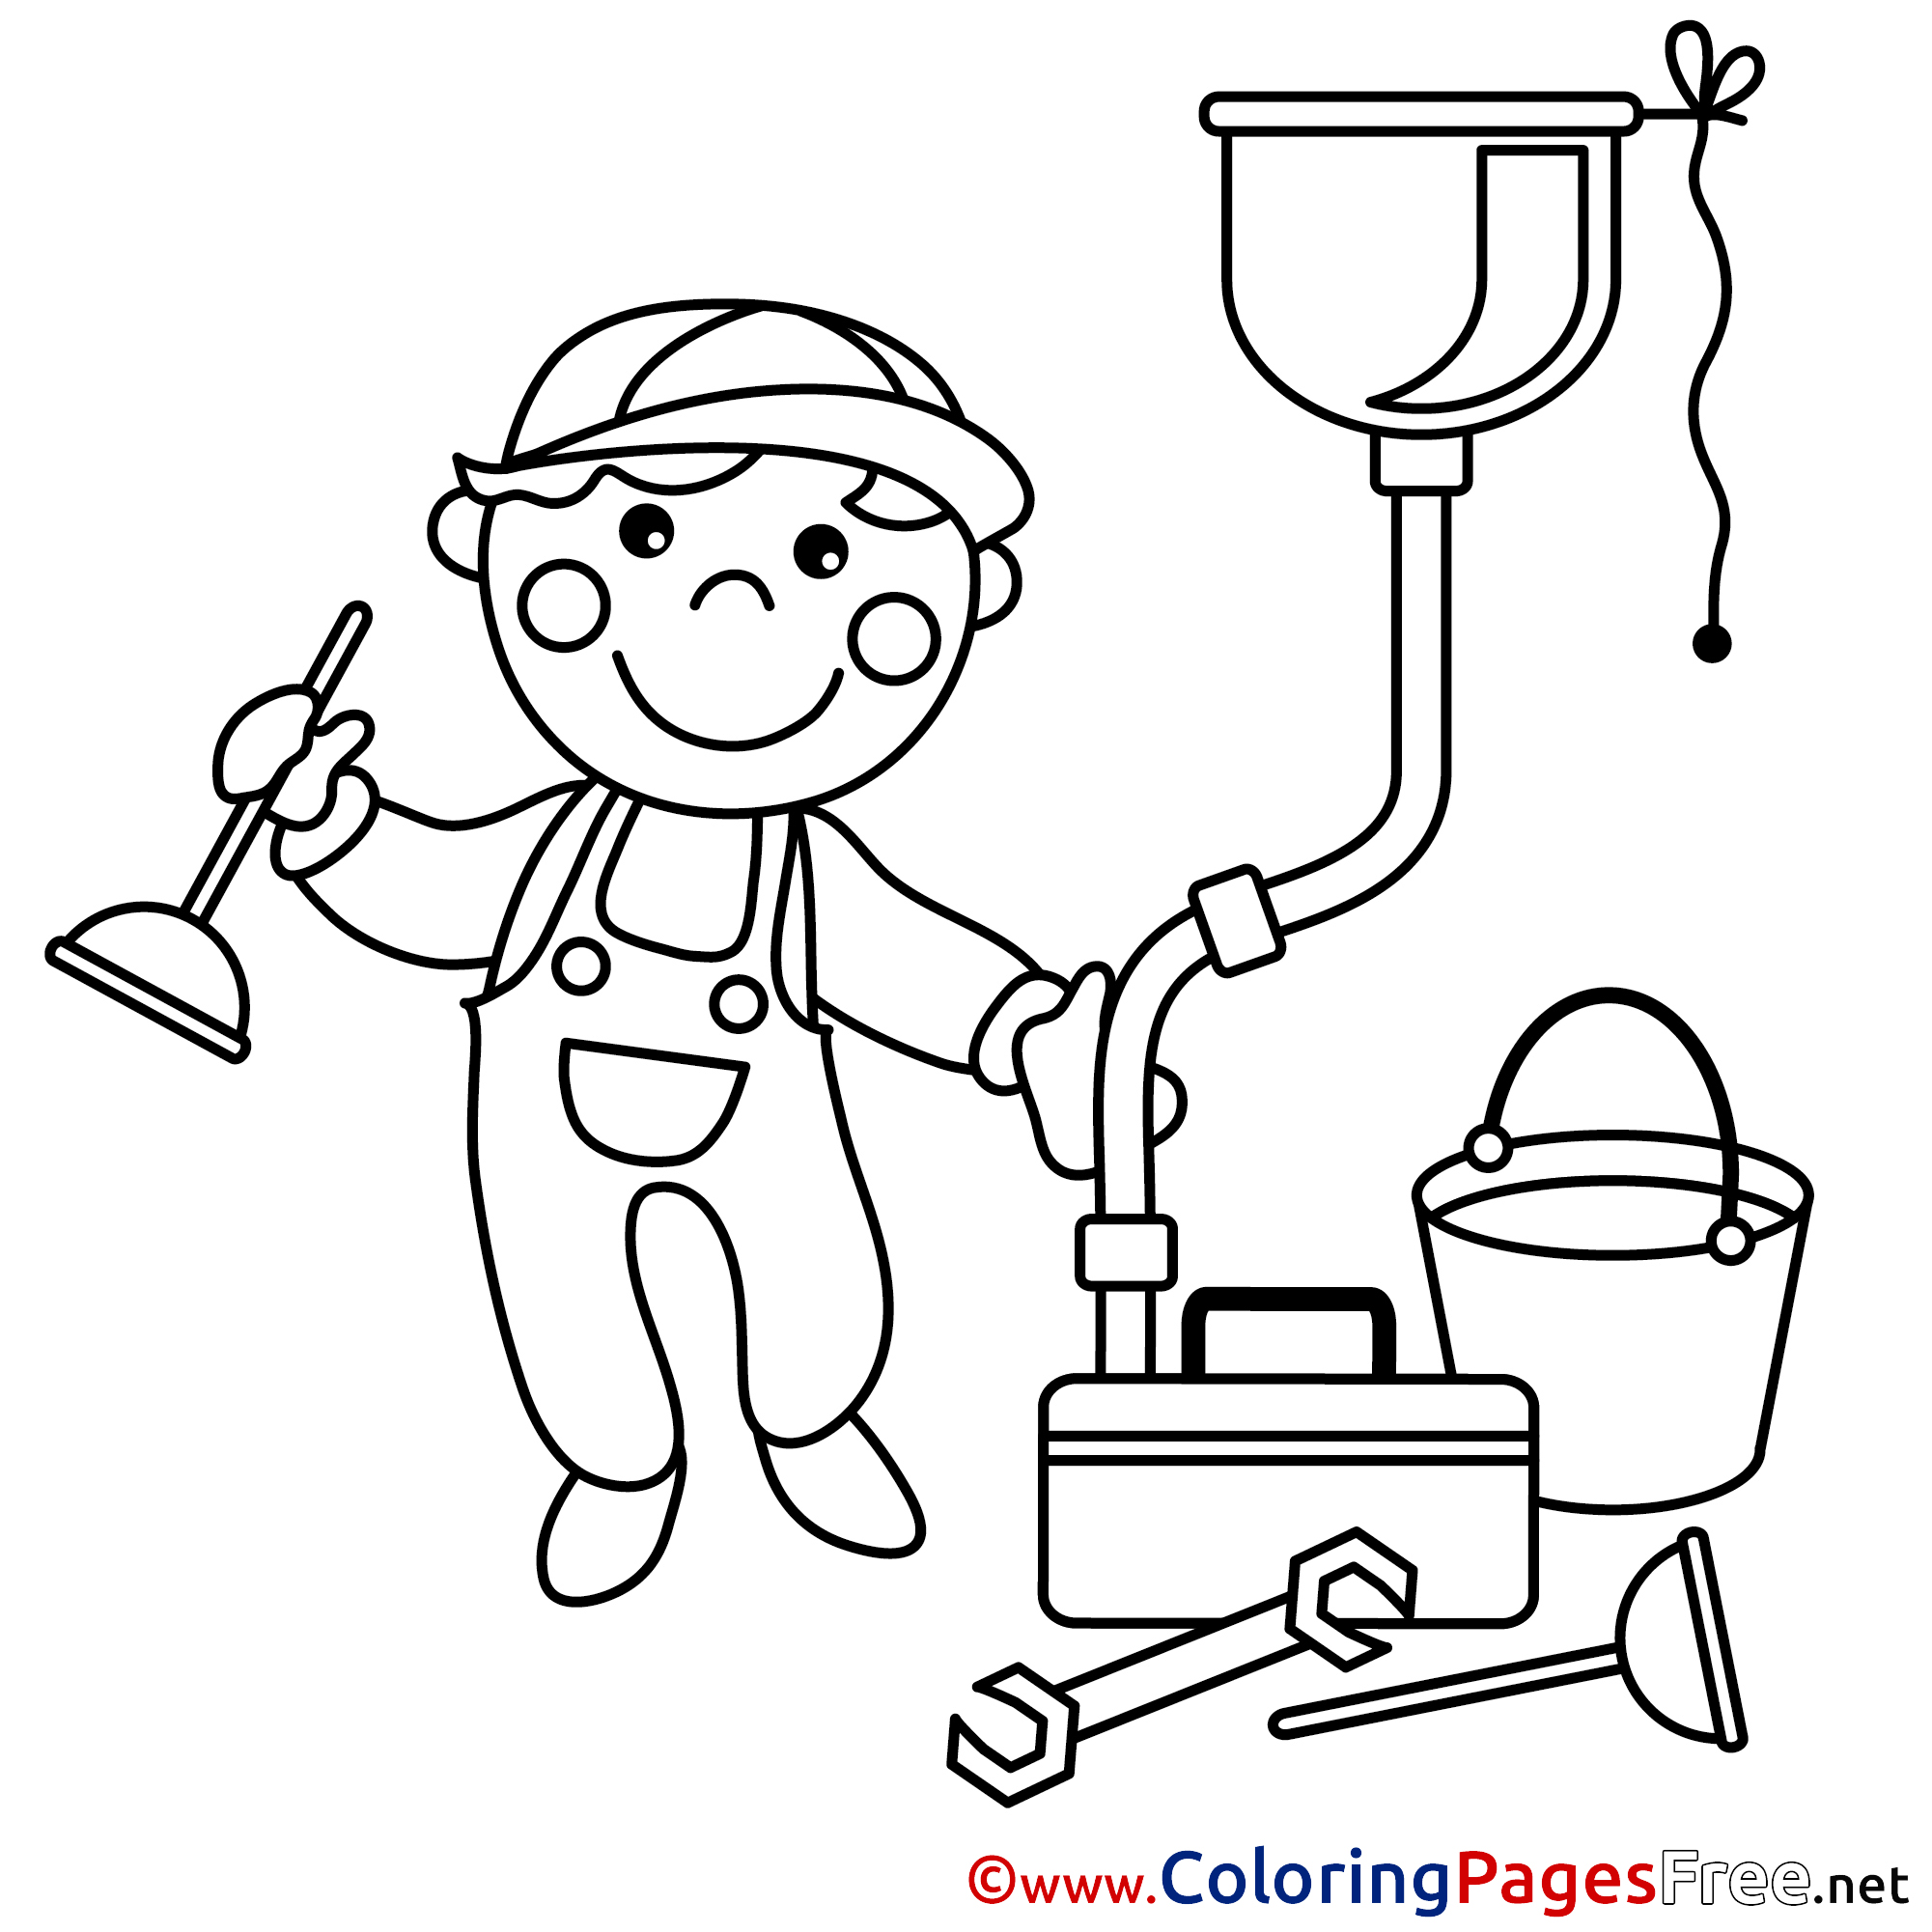 plumber coloring pages